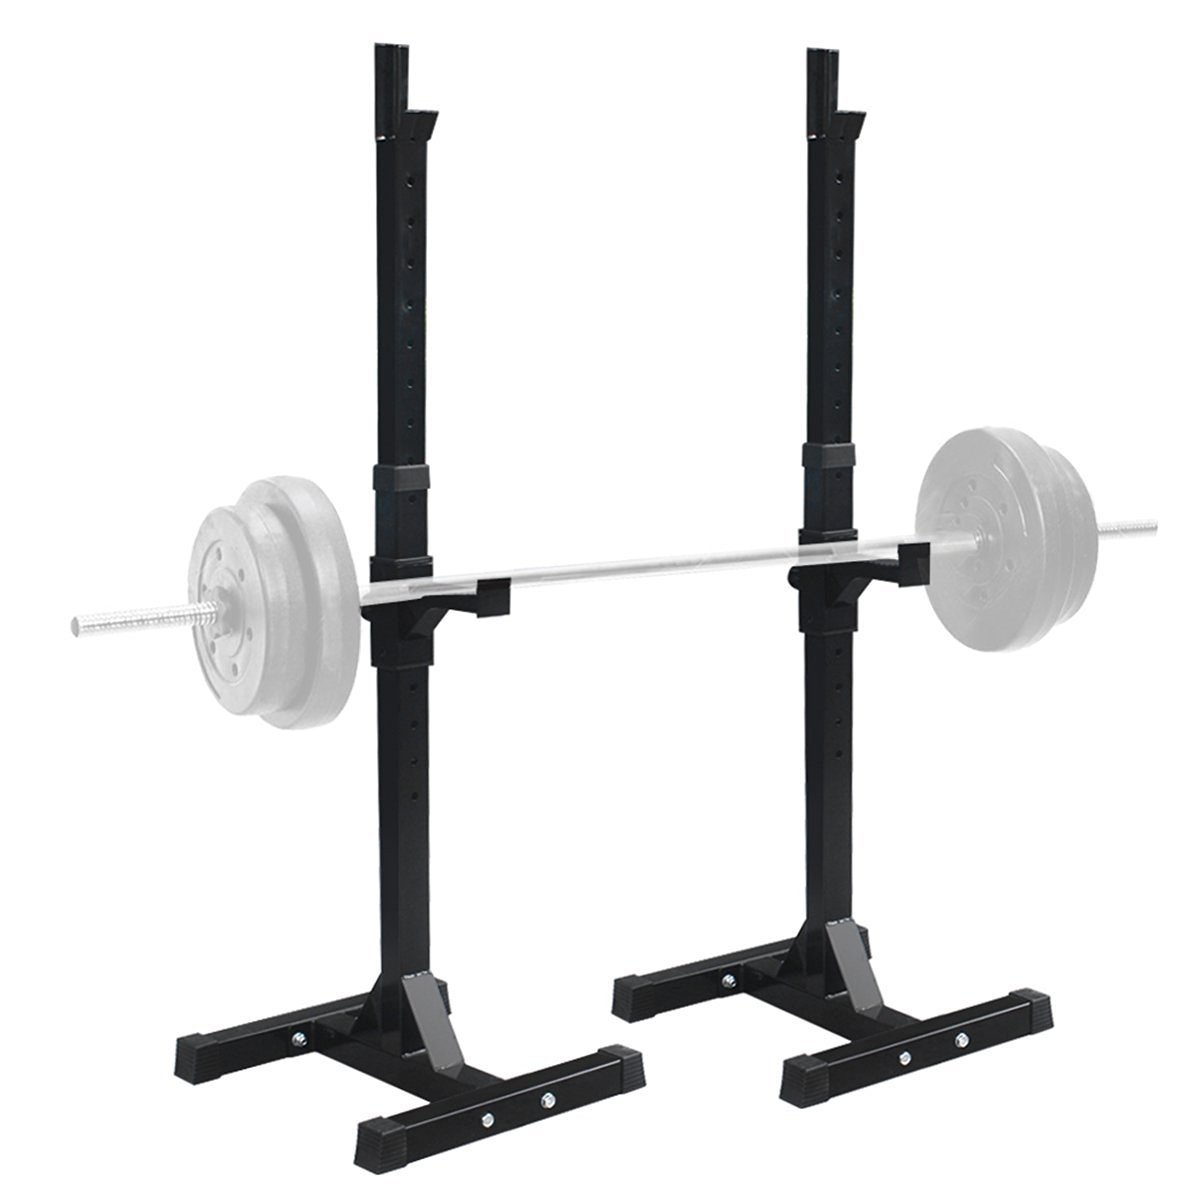 Sportmad Pair of Dumbbell Rack Adjustable Standard Solid Sturdy Steel Squat Stands Barbell Bench Free Press Stands Portable Rack for Home Gym Exercise Fitness Workout Training, 400lbs Capacity, Black